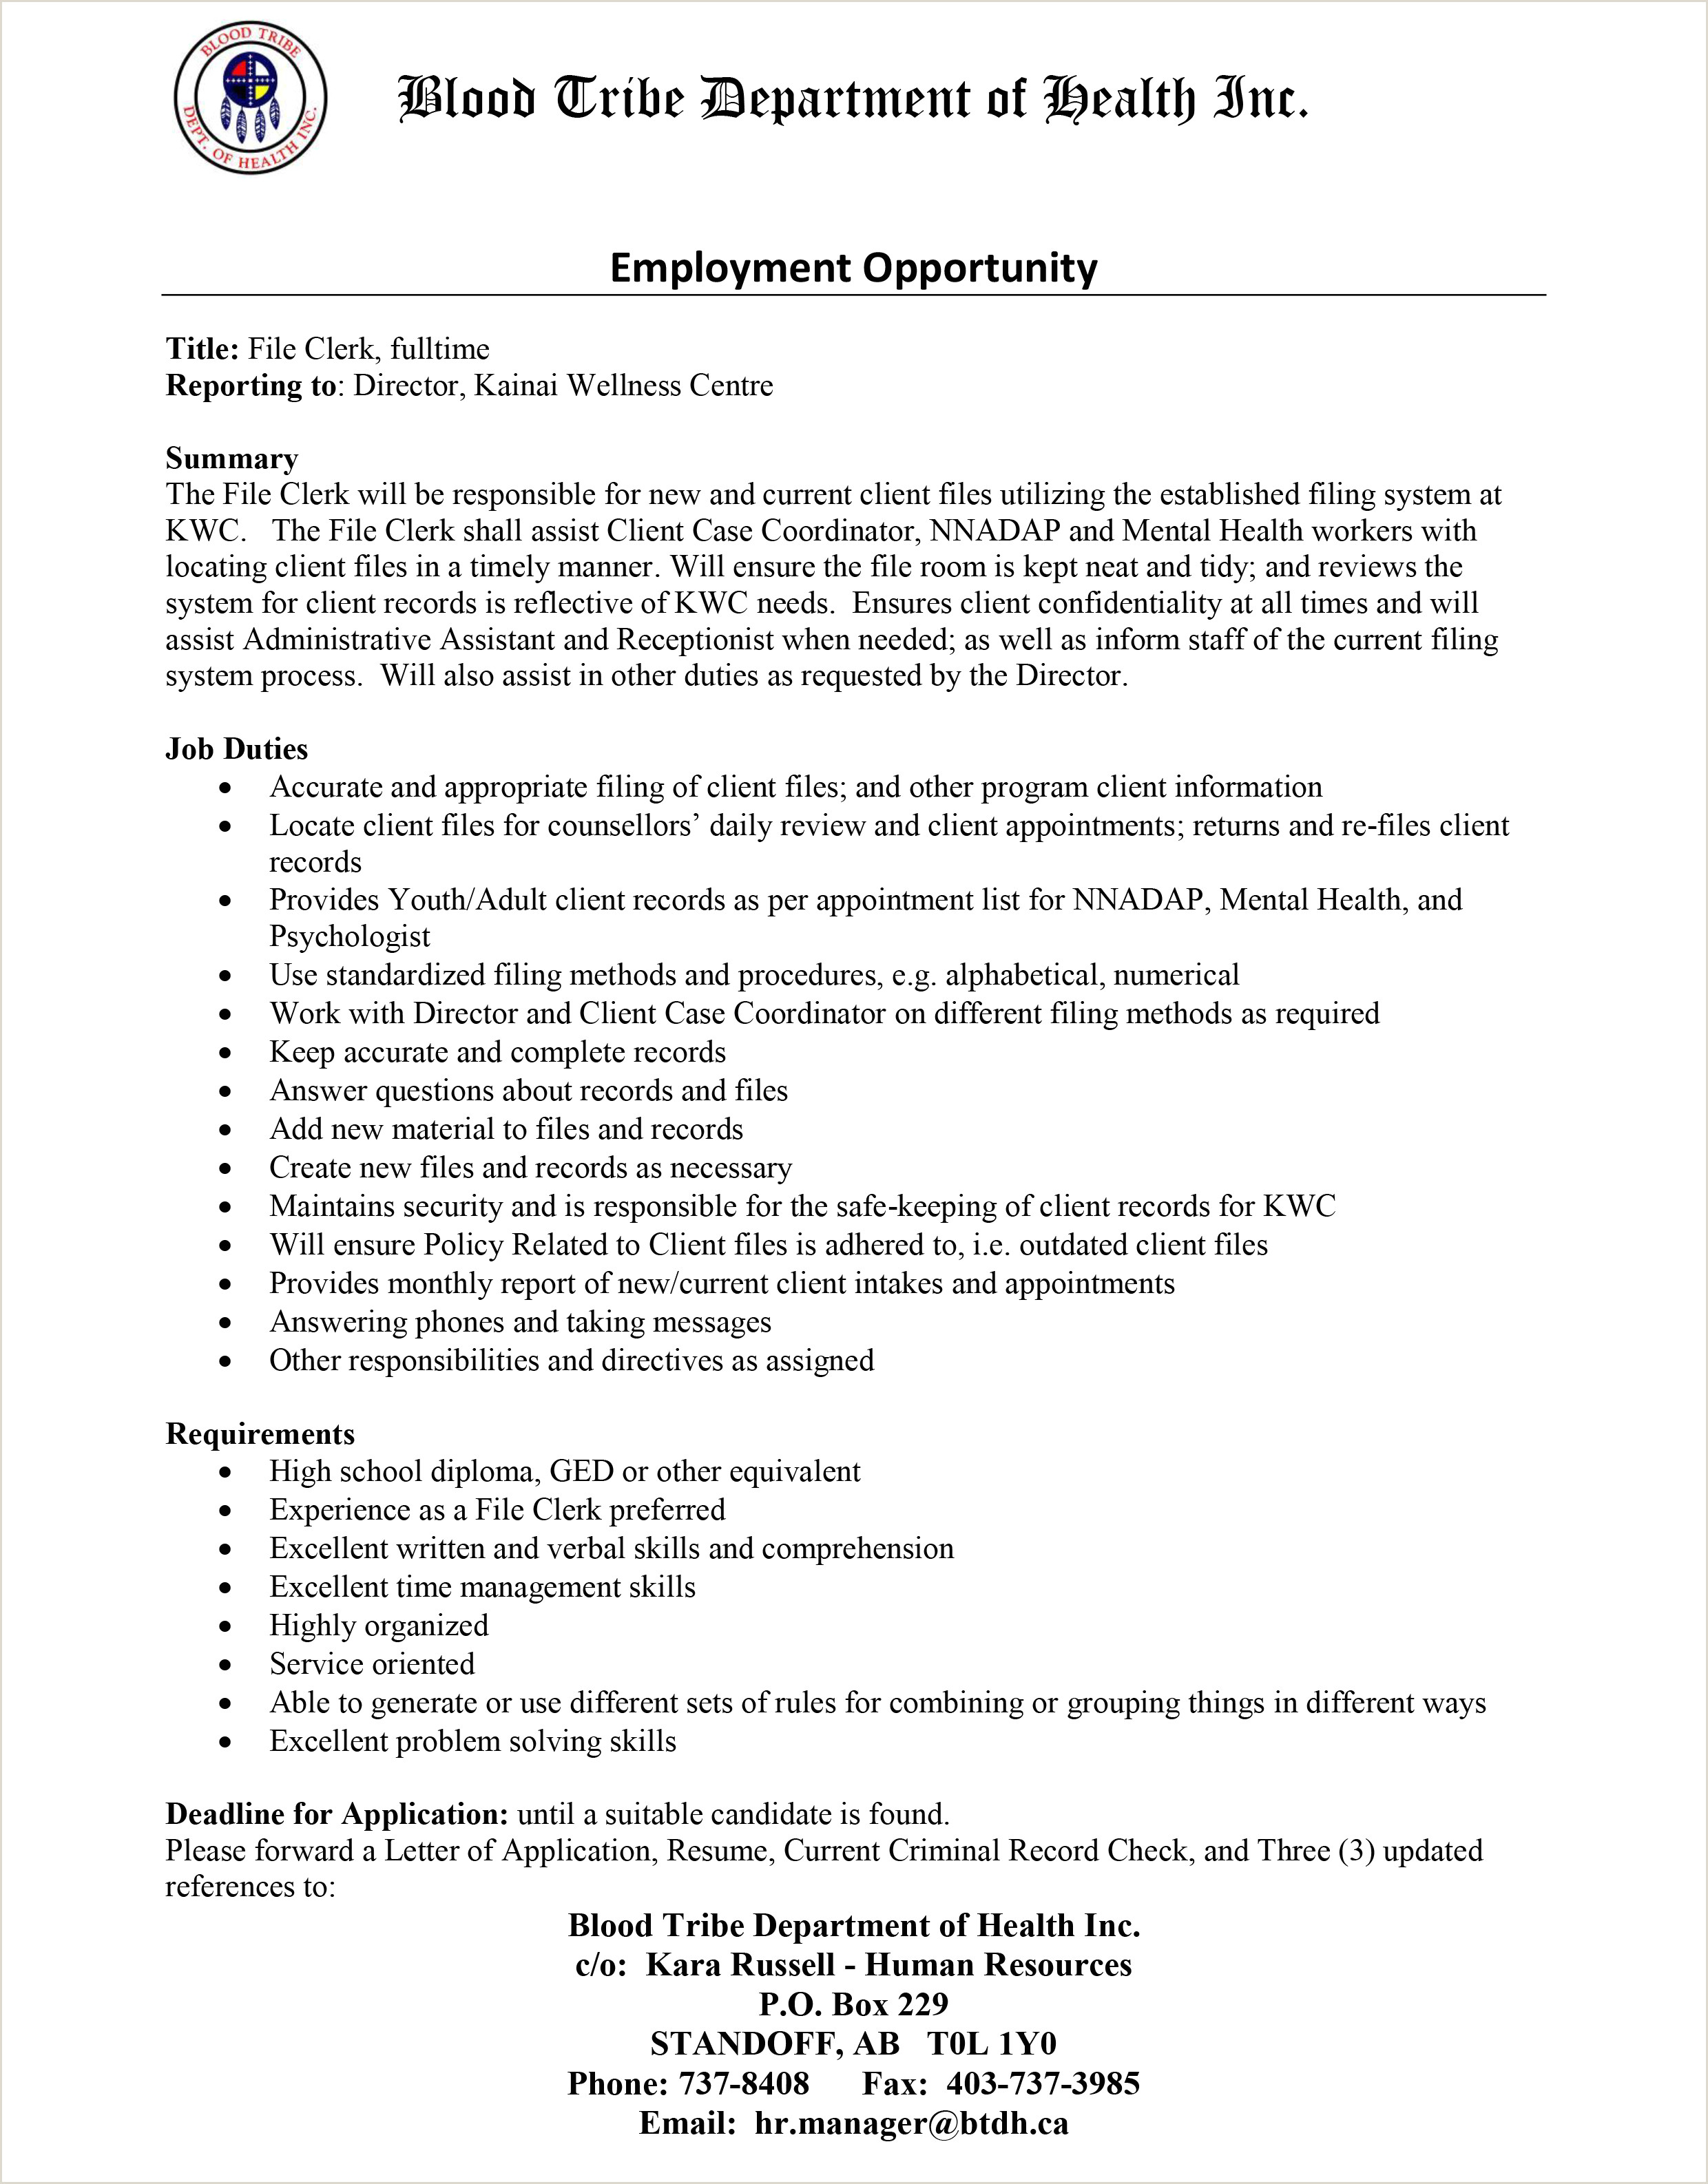 Cover Letter for File Clerk Employment